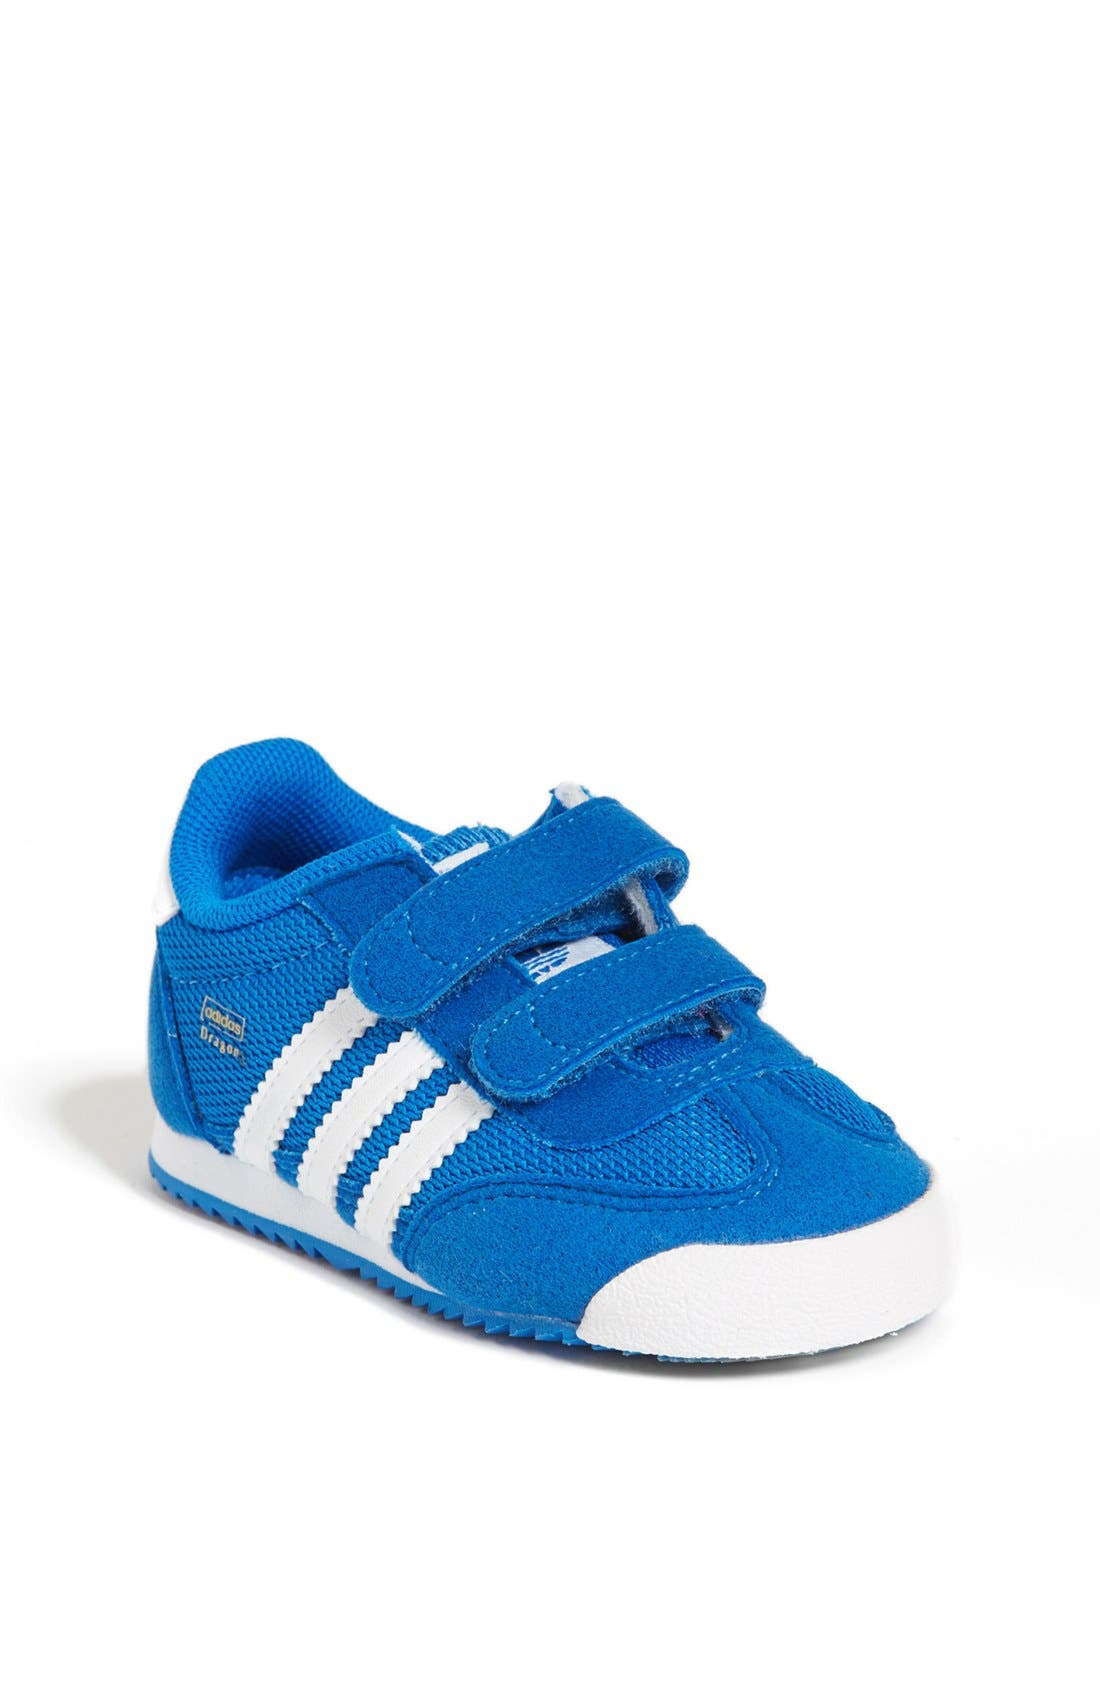 Main Image - adidas 'Dragon' Sneaker (Baby, Walker & Toddler)